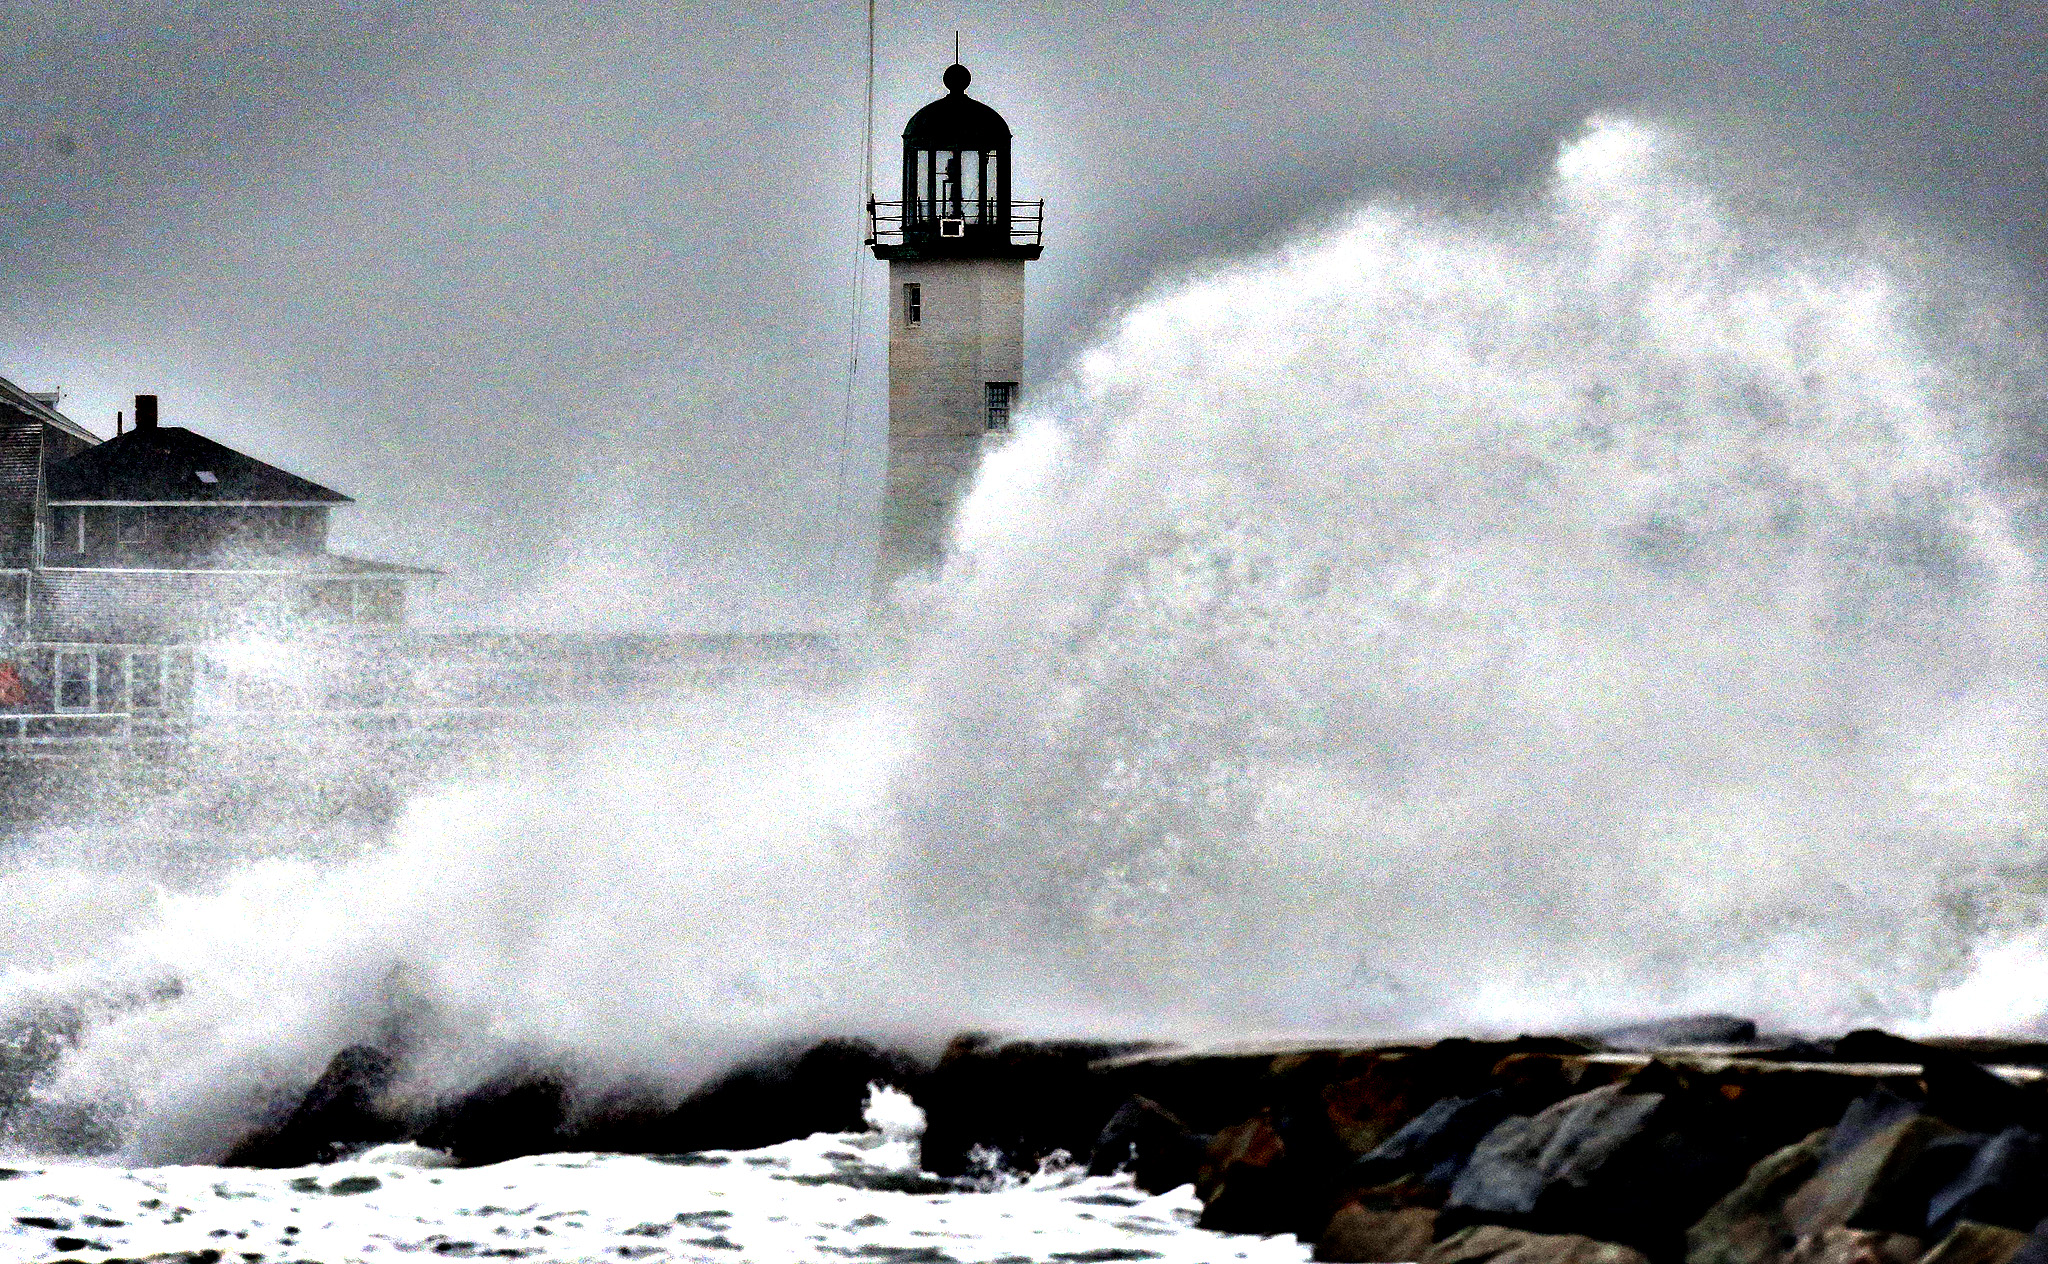 Wind-driven waves crash on a sea wall in Scituate, Mass., Wednesday, March 26, 2014. Cape Cod and the islands were expected to bear the brunt of the spring storm that struck full force Wednesday. The storm could drop up to 10 inches of snow.